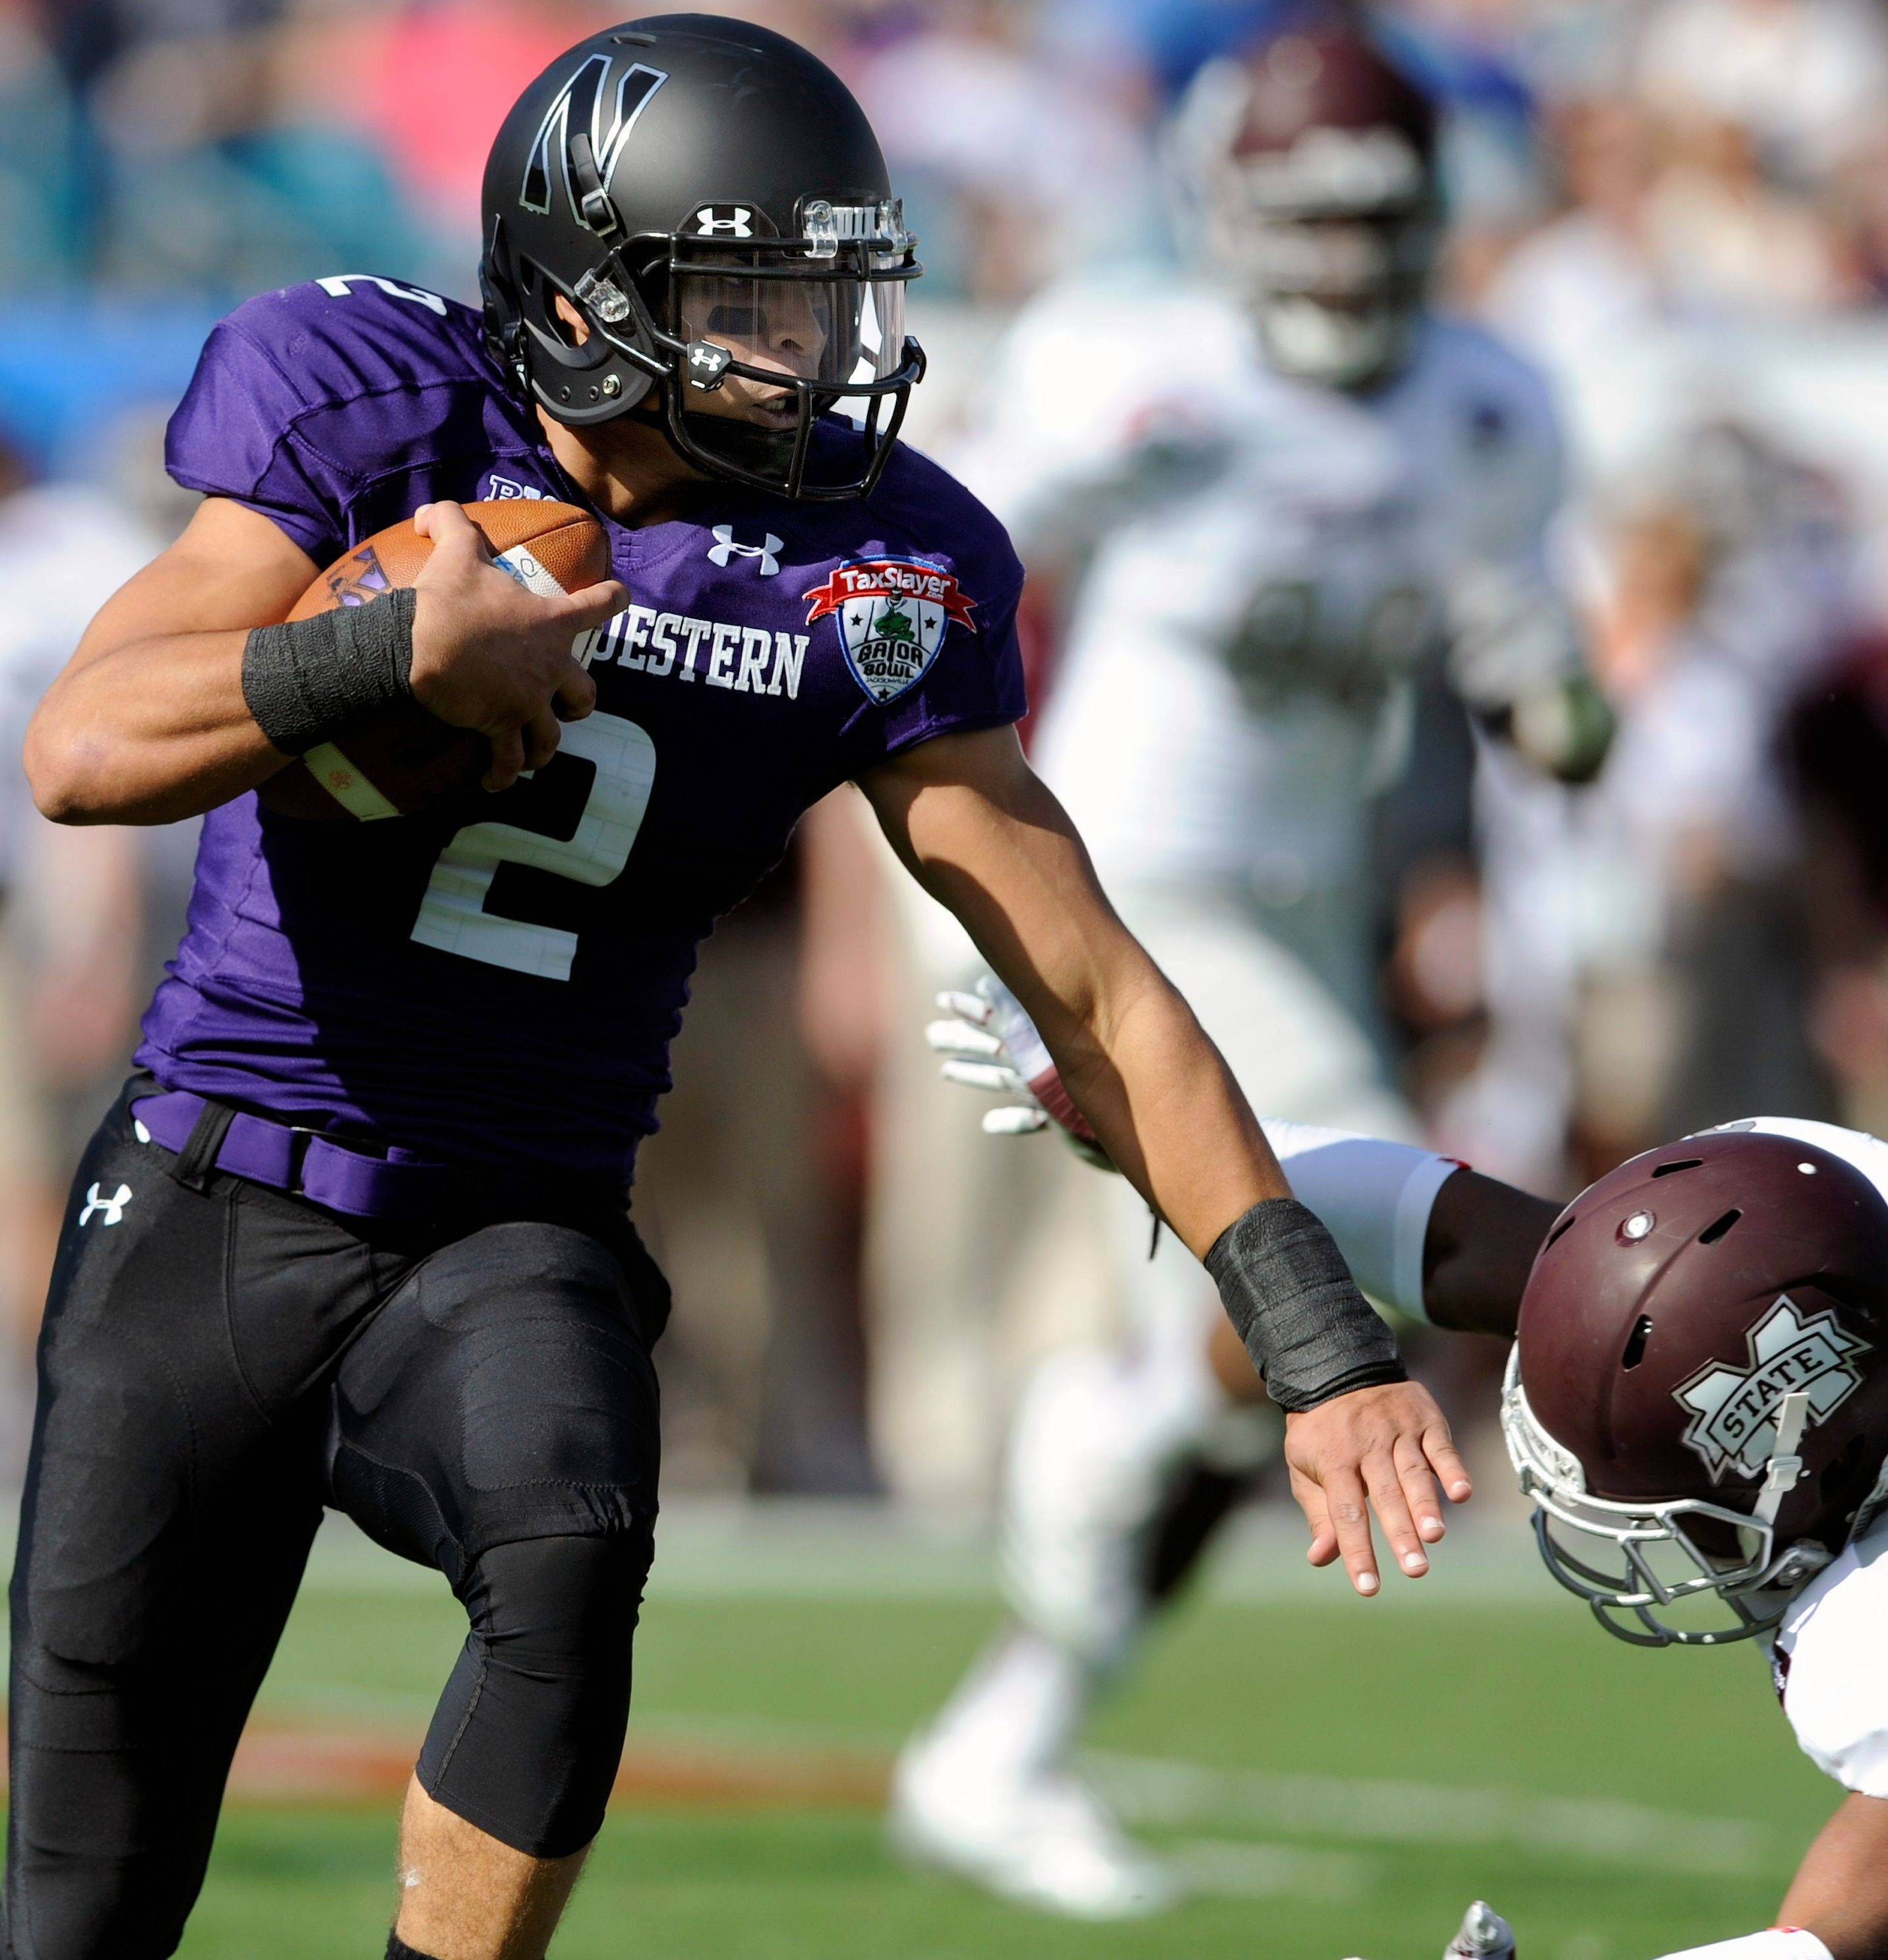 Northwestern quarterback Kain Colter stiff arms Mississippi State defensive back Jay Hughes during the first half of the Gator Bowl on Tuesday. Colter ran for 71 yards on 11 attempts in the Wildcats' victory.